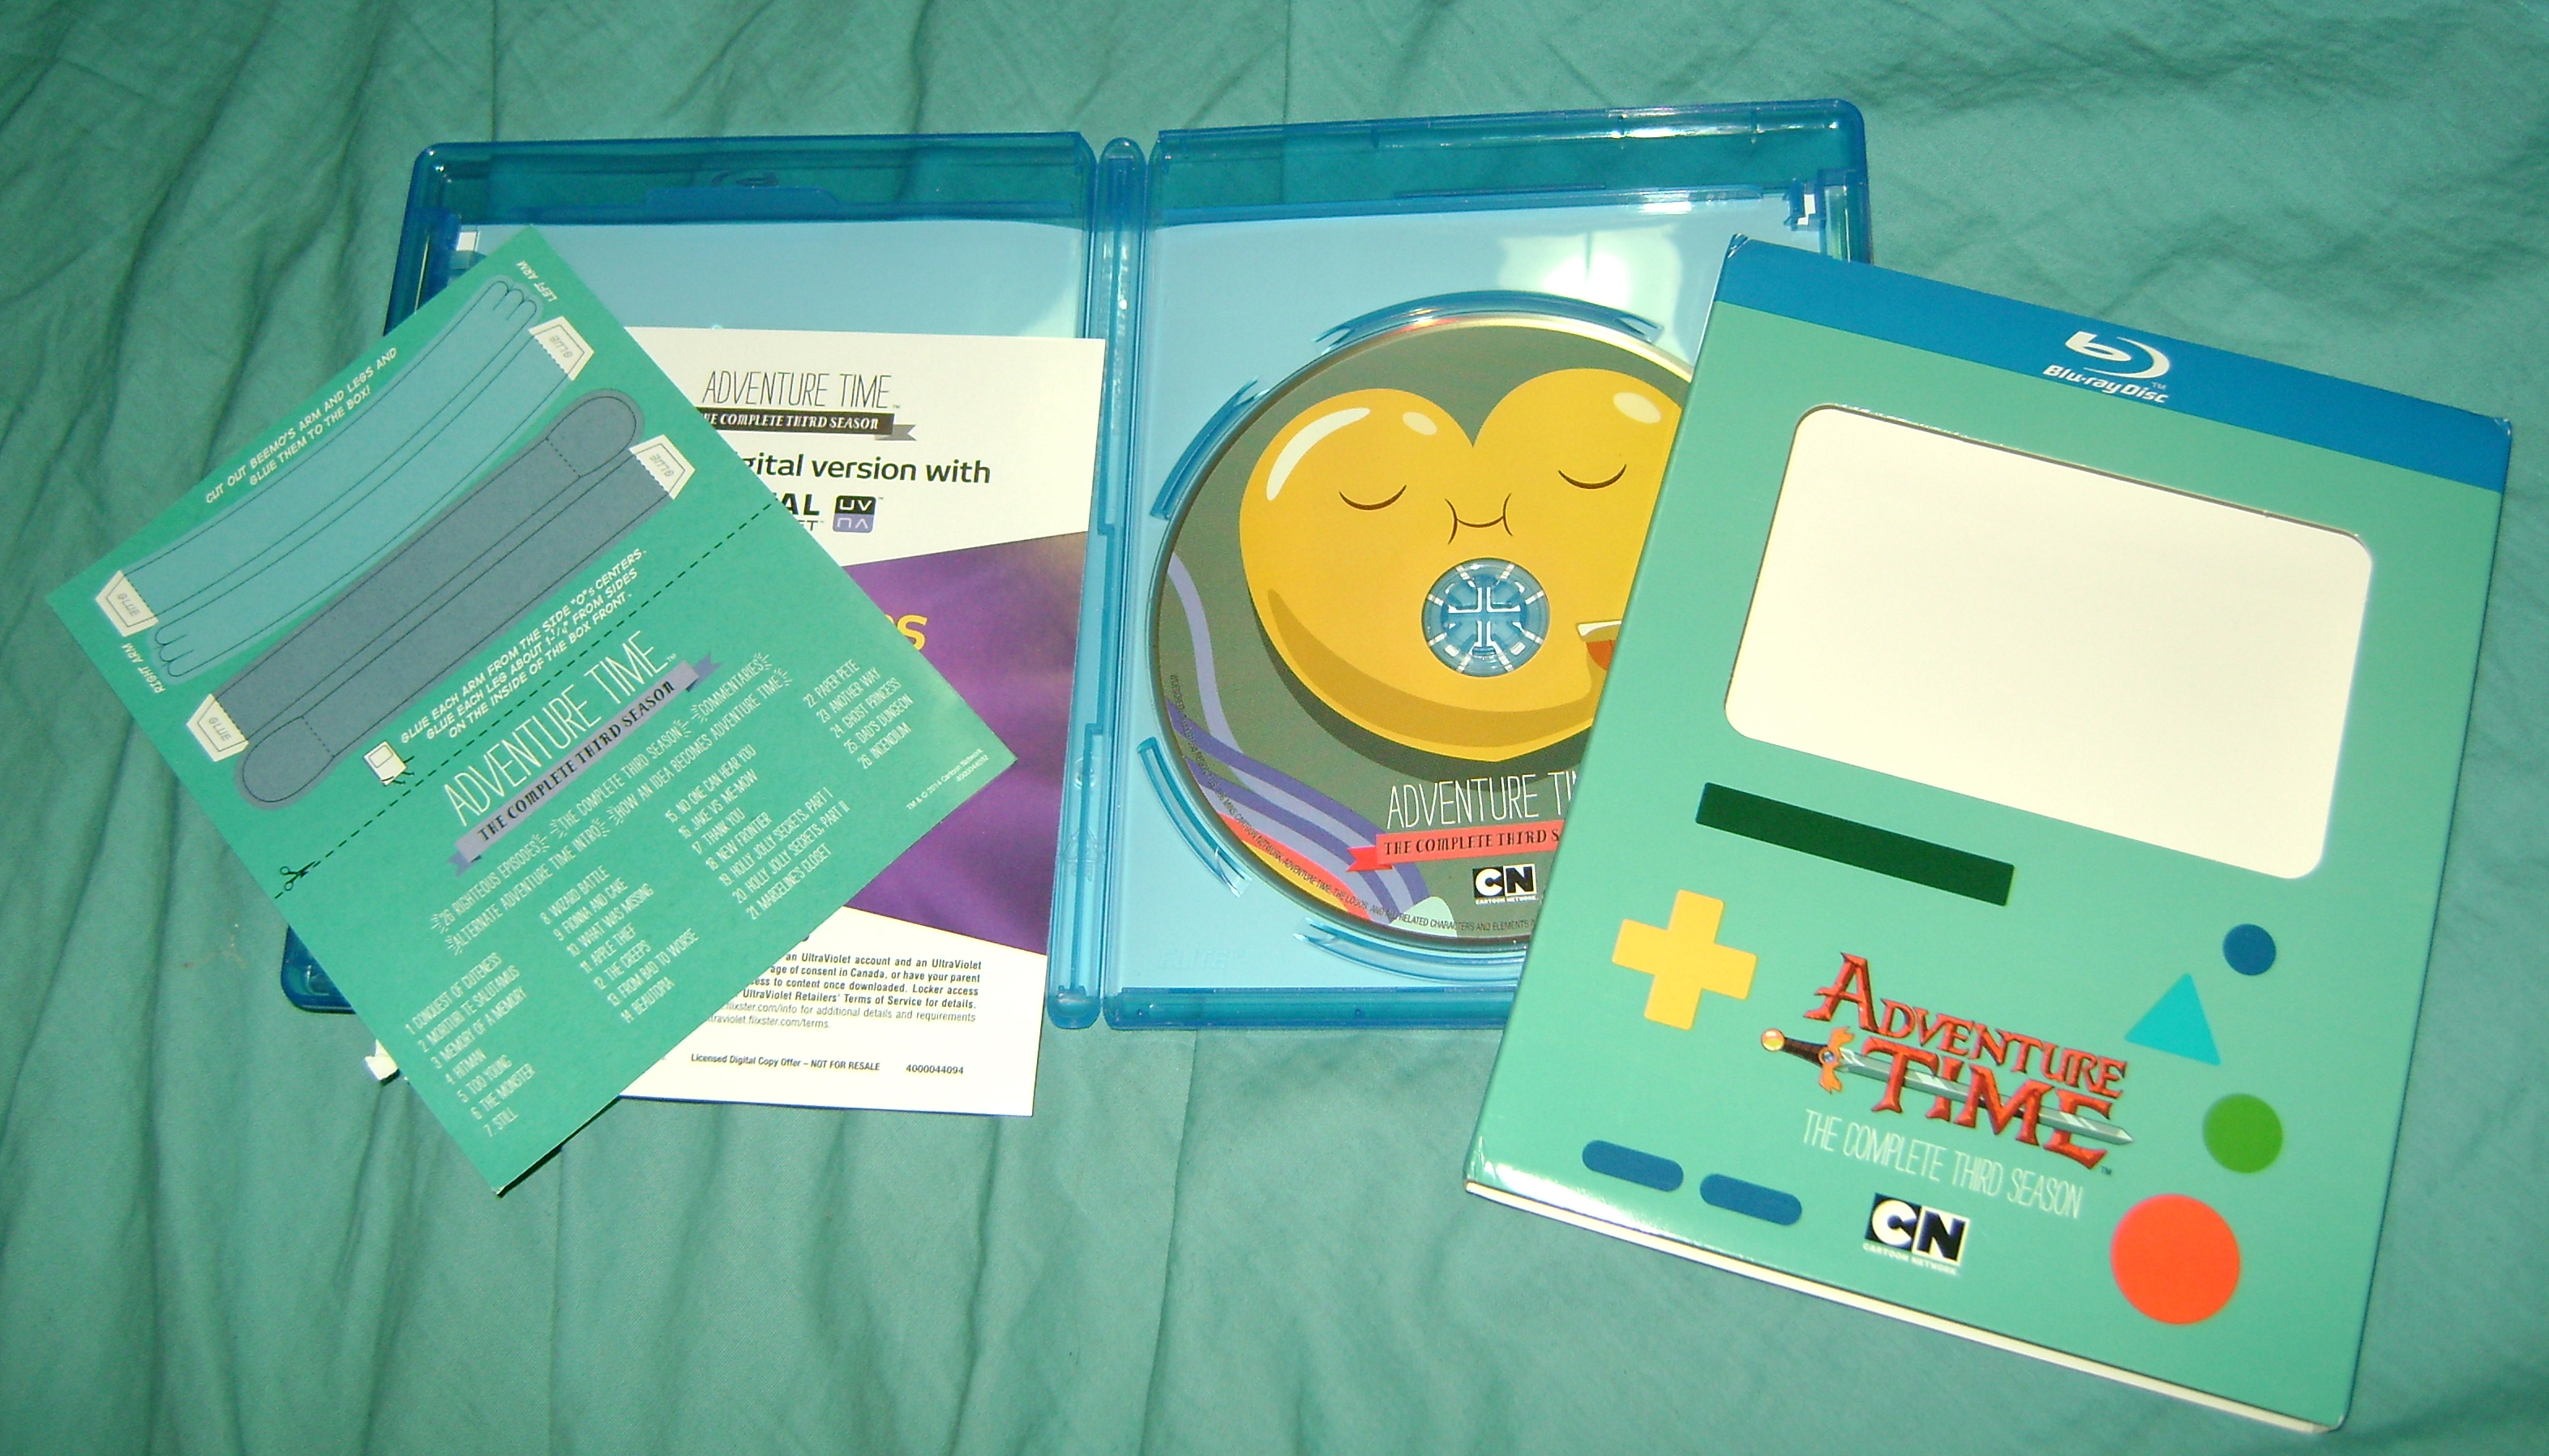 ADT 3 Adventure Time: The Complete Third Season, Blu ray Review!